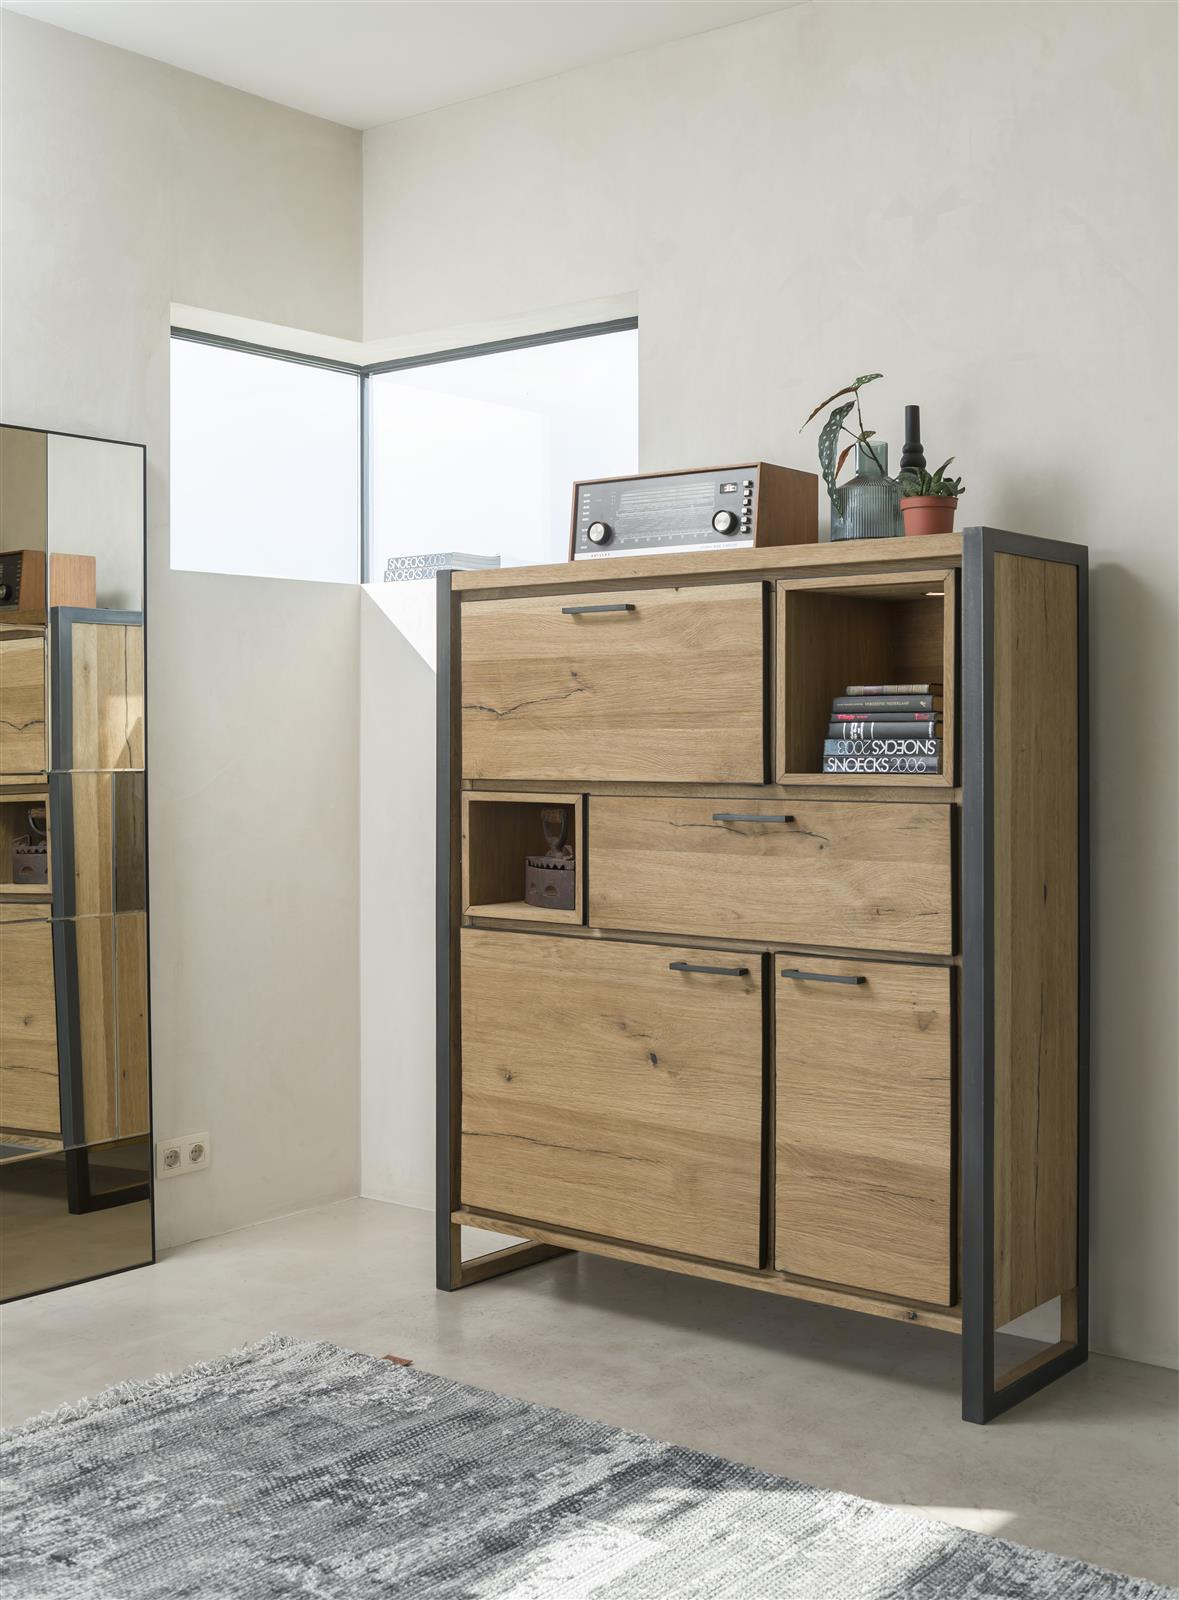 Habufa Metalox Small Display Storage Cabinet